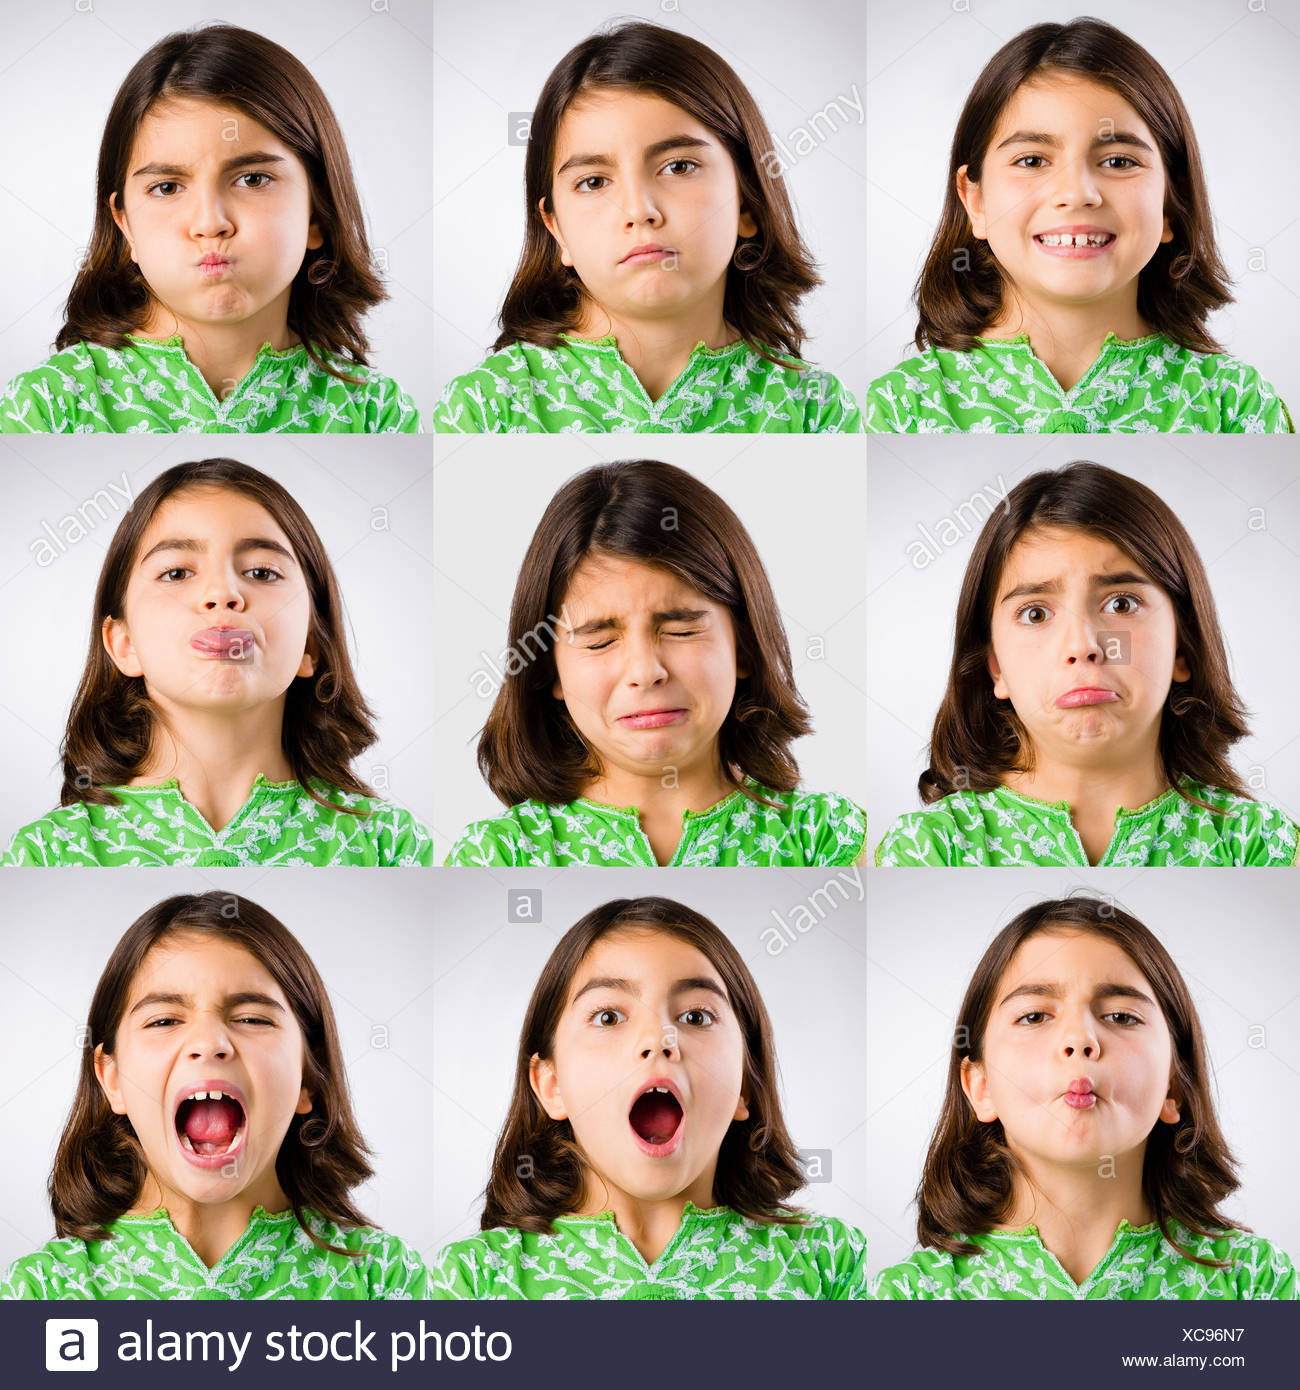 Diferent expressions - Stock Image